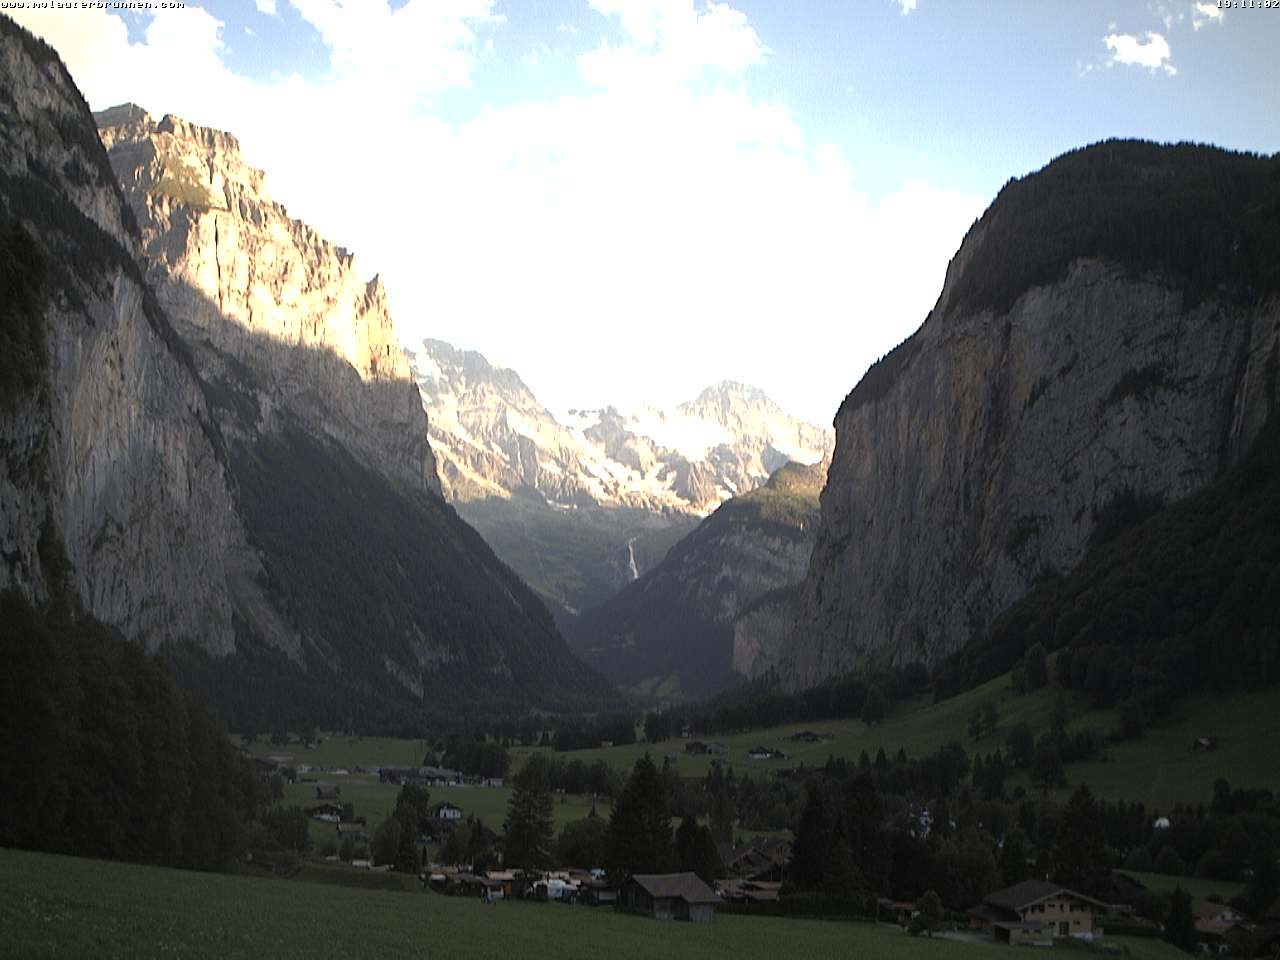 http://www.jungfraumarketing.ch/webcam/lauterbrunnen/cam1/current